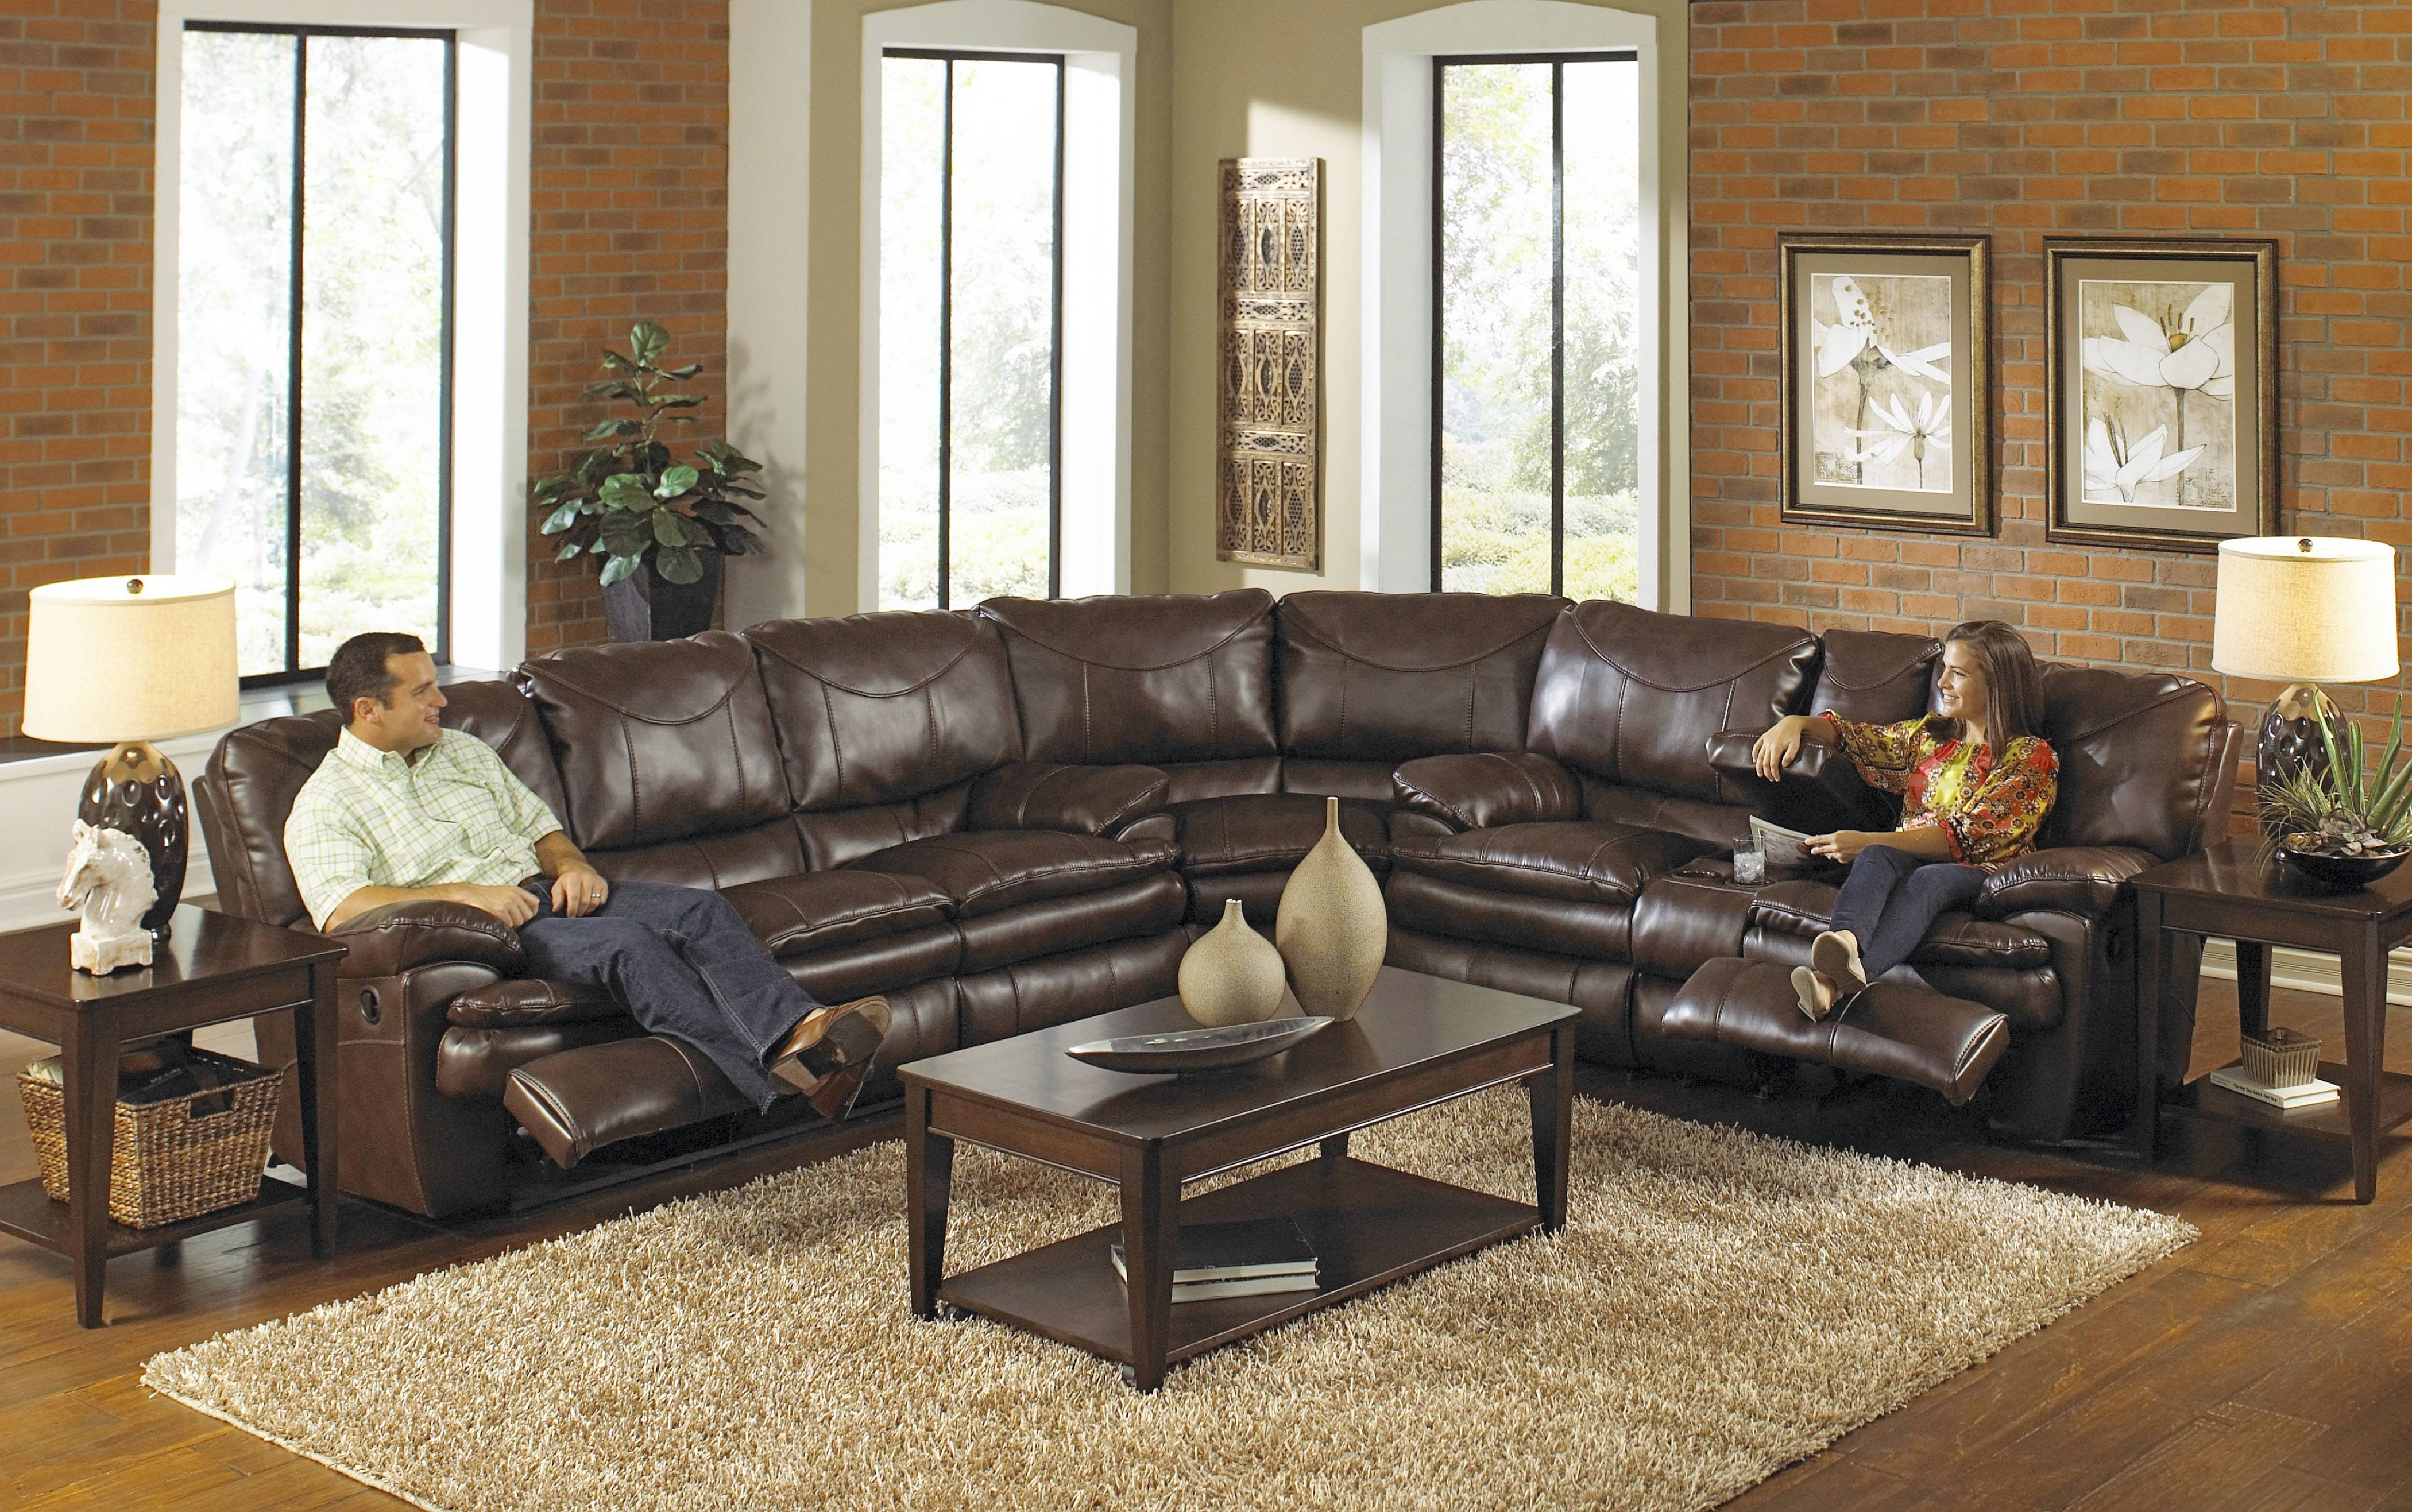 Best Sectional Sleeper Sofa With Recliners 12 In Sectional Sofas Intended For Denver Sleeper Sofas (View 11 of 15)